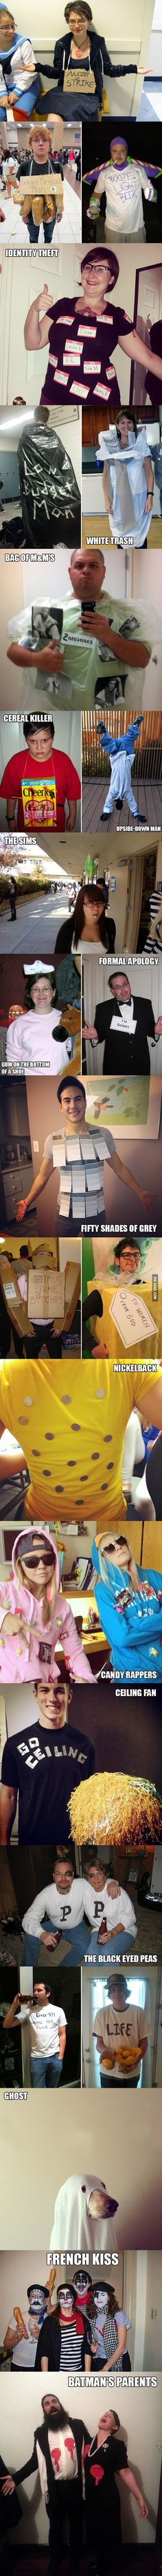 Last-minute Halloween costumes - 9GAG